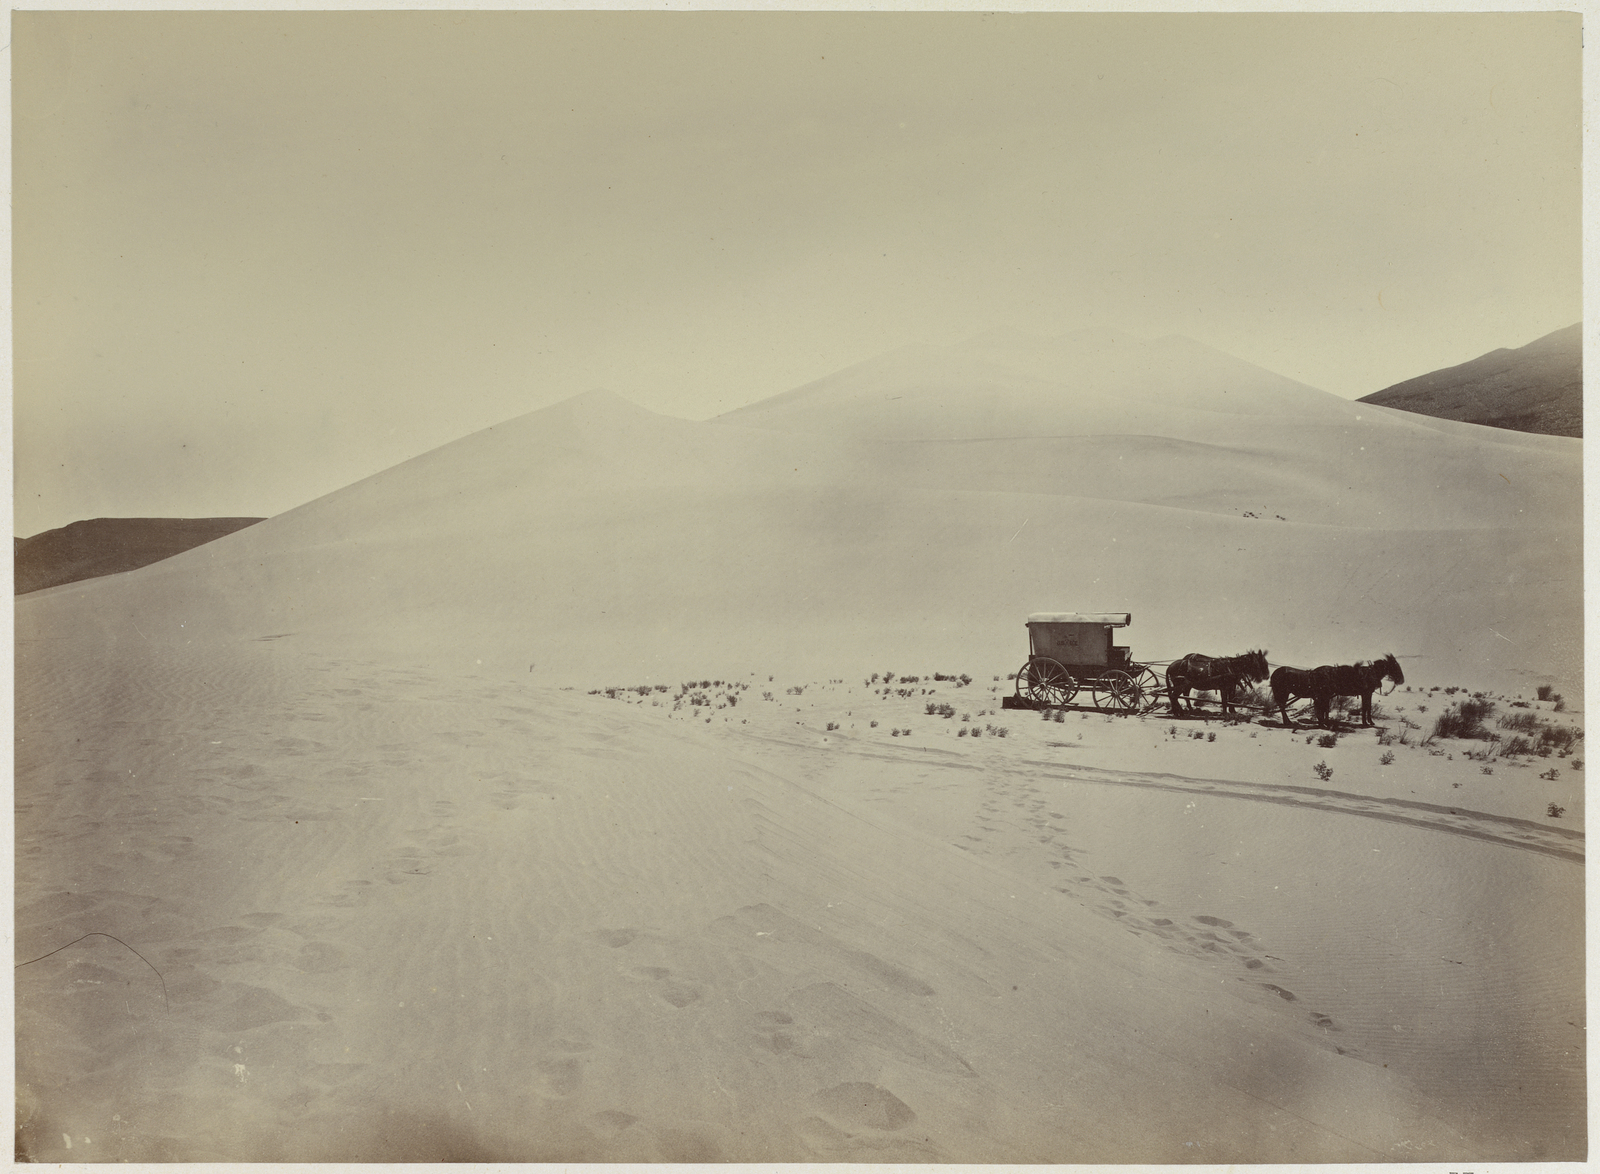 Photograph of Timothy O'Sullivan's Ambulance Wagon and Portable Darkroom on the Sand Dunes of Carson Desert during the King Survey